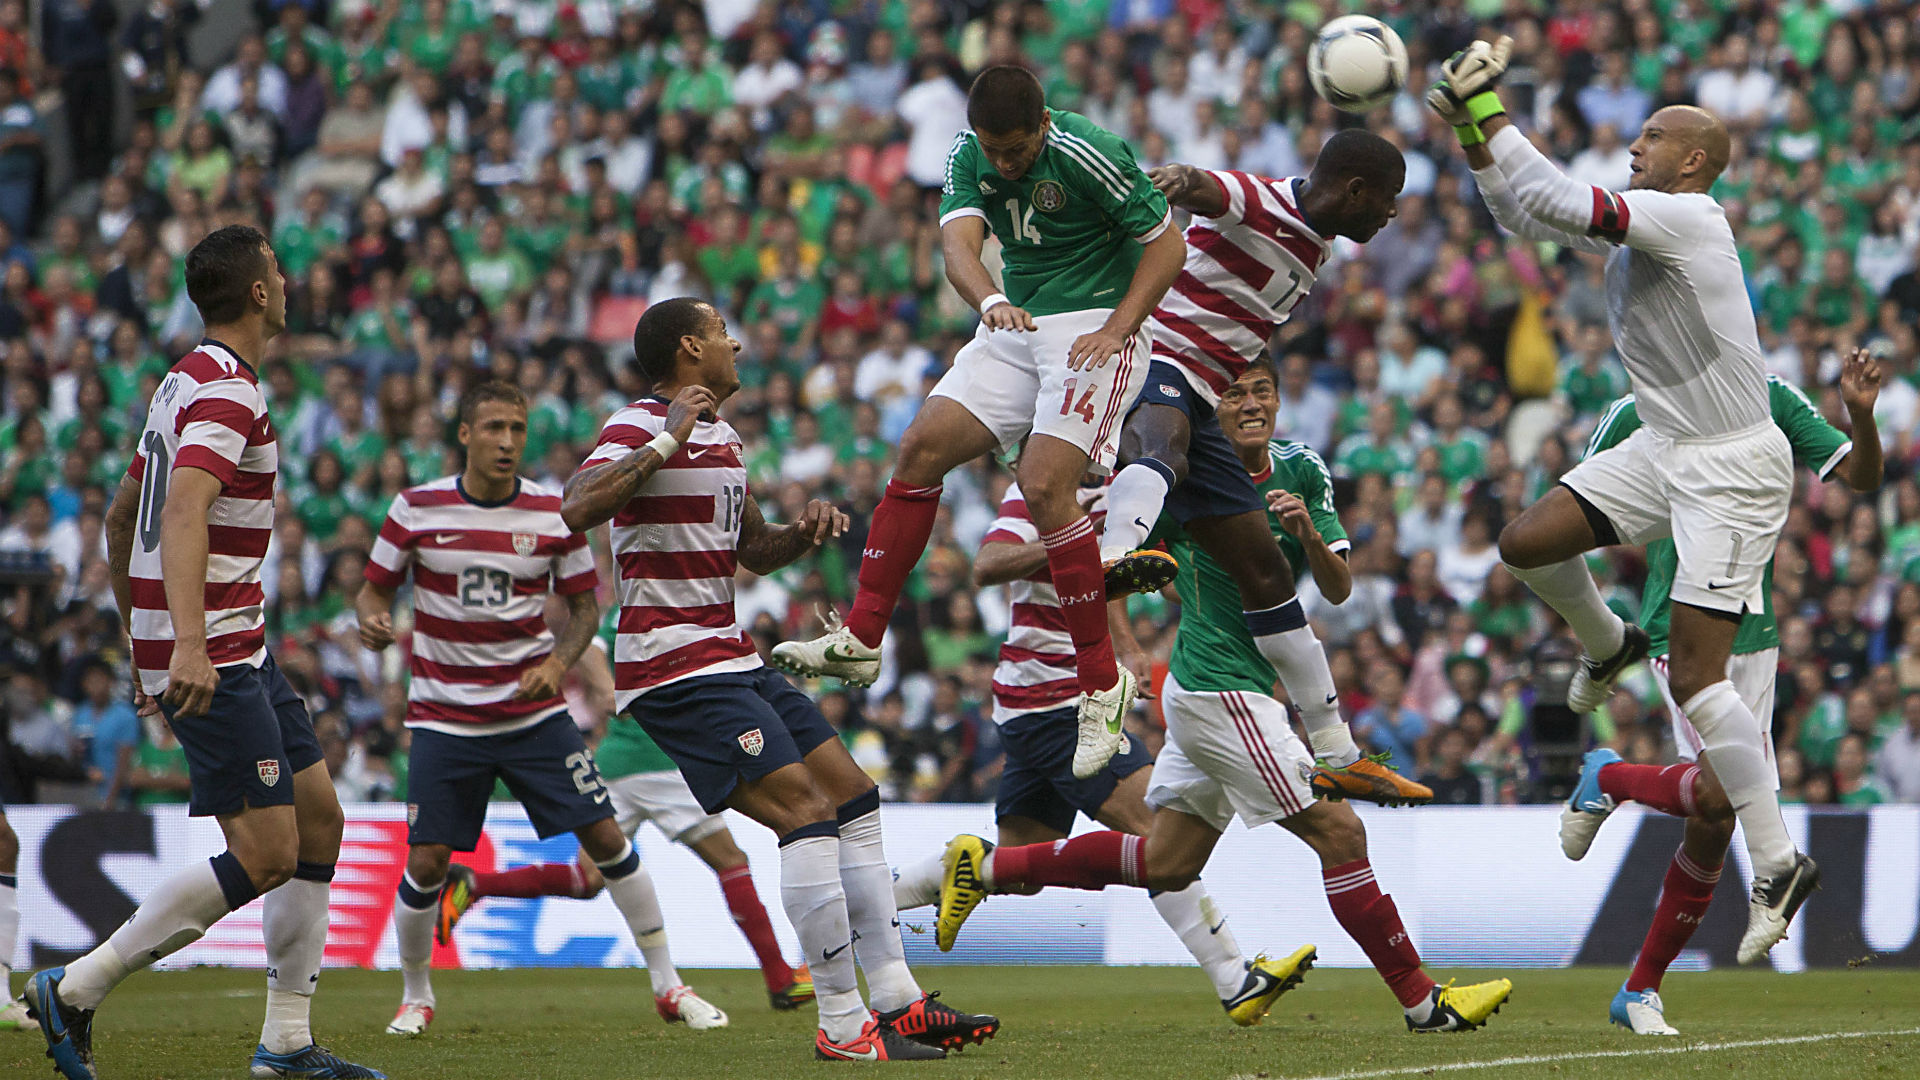 USA Mexico 2 - 070315 - Getty - FTR